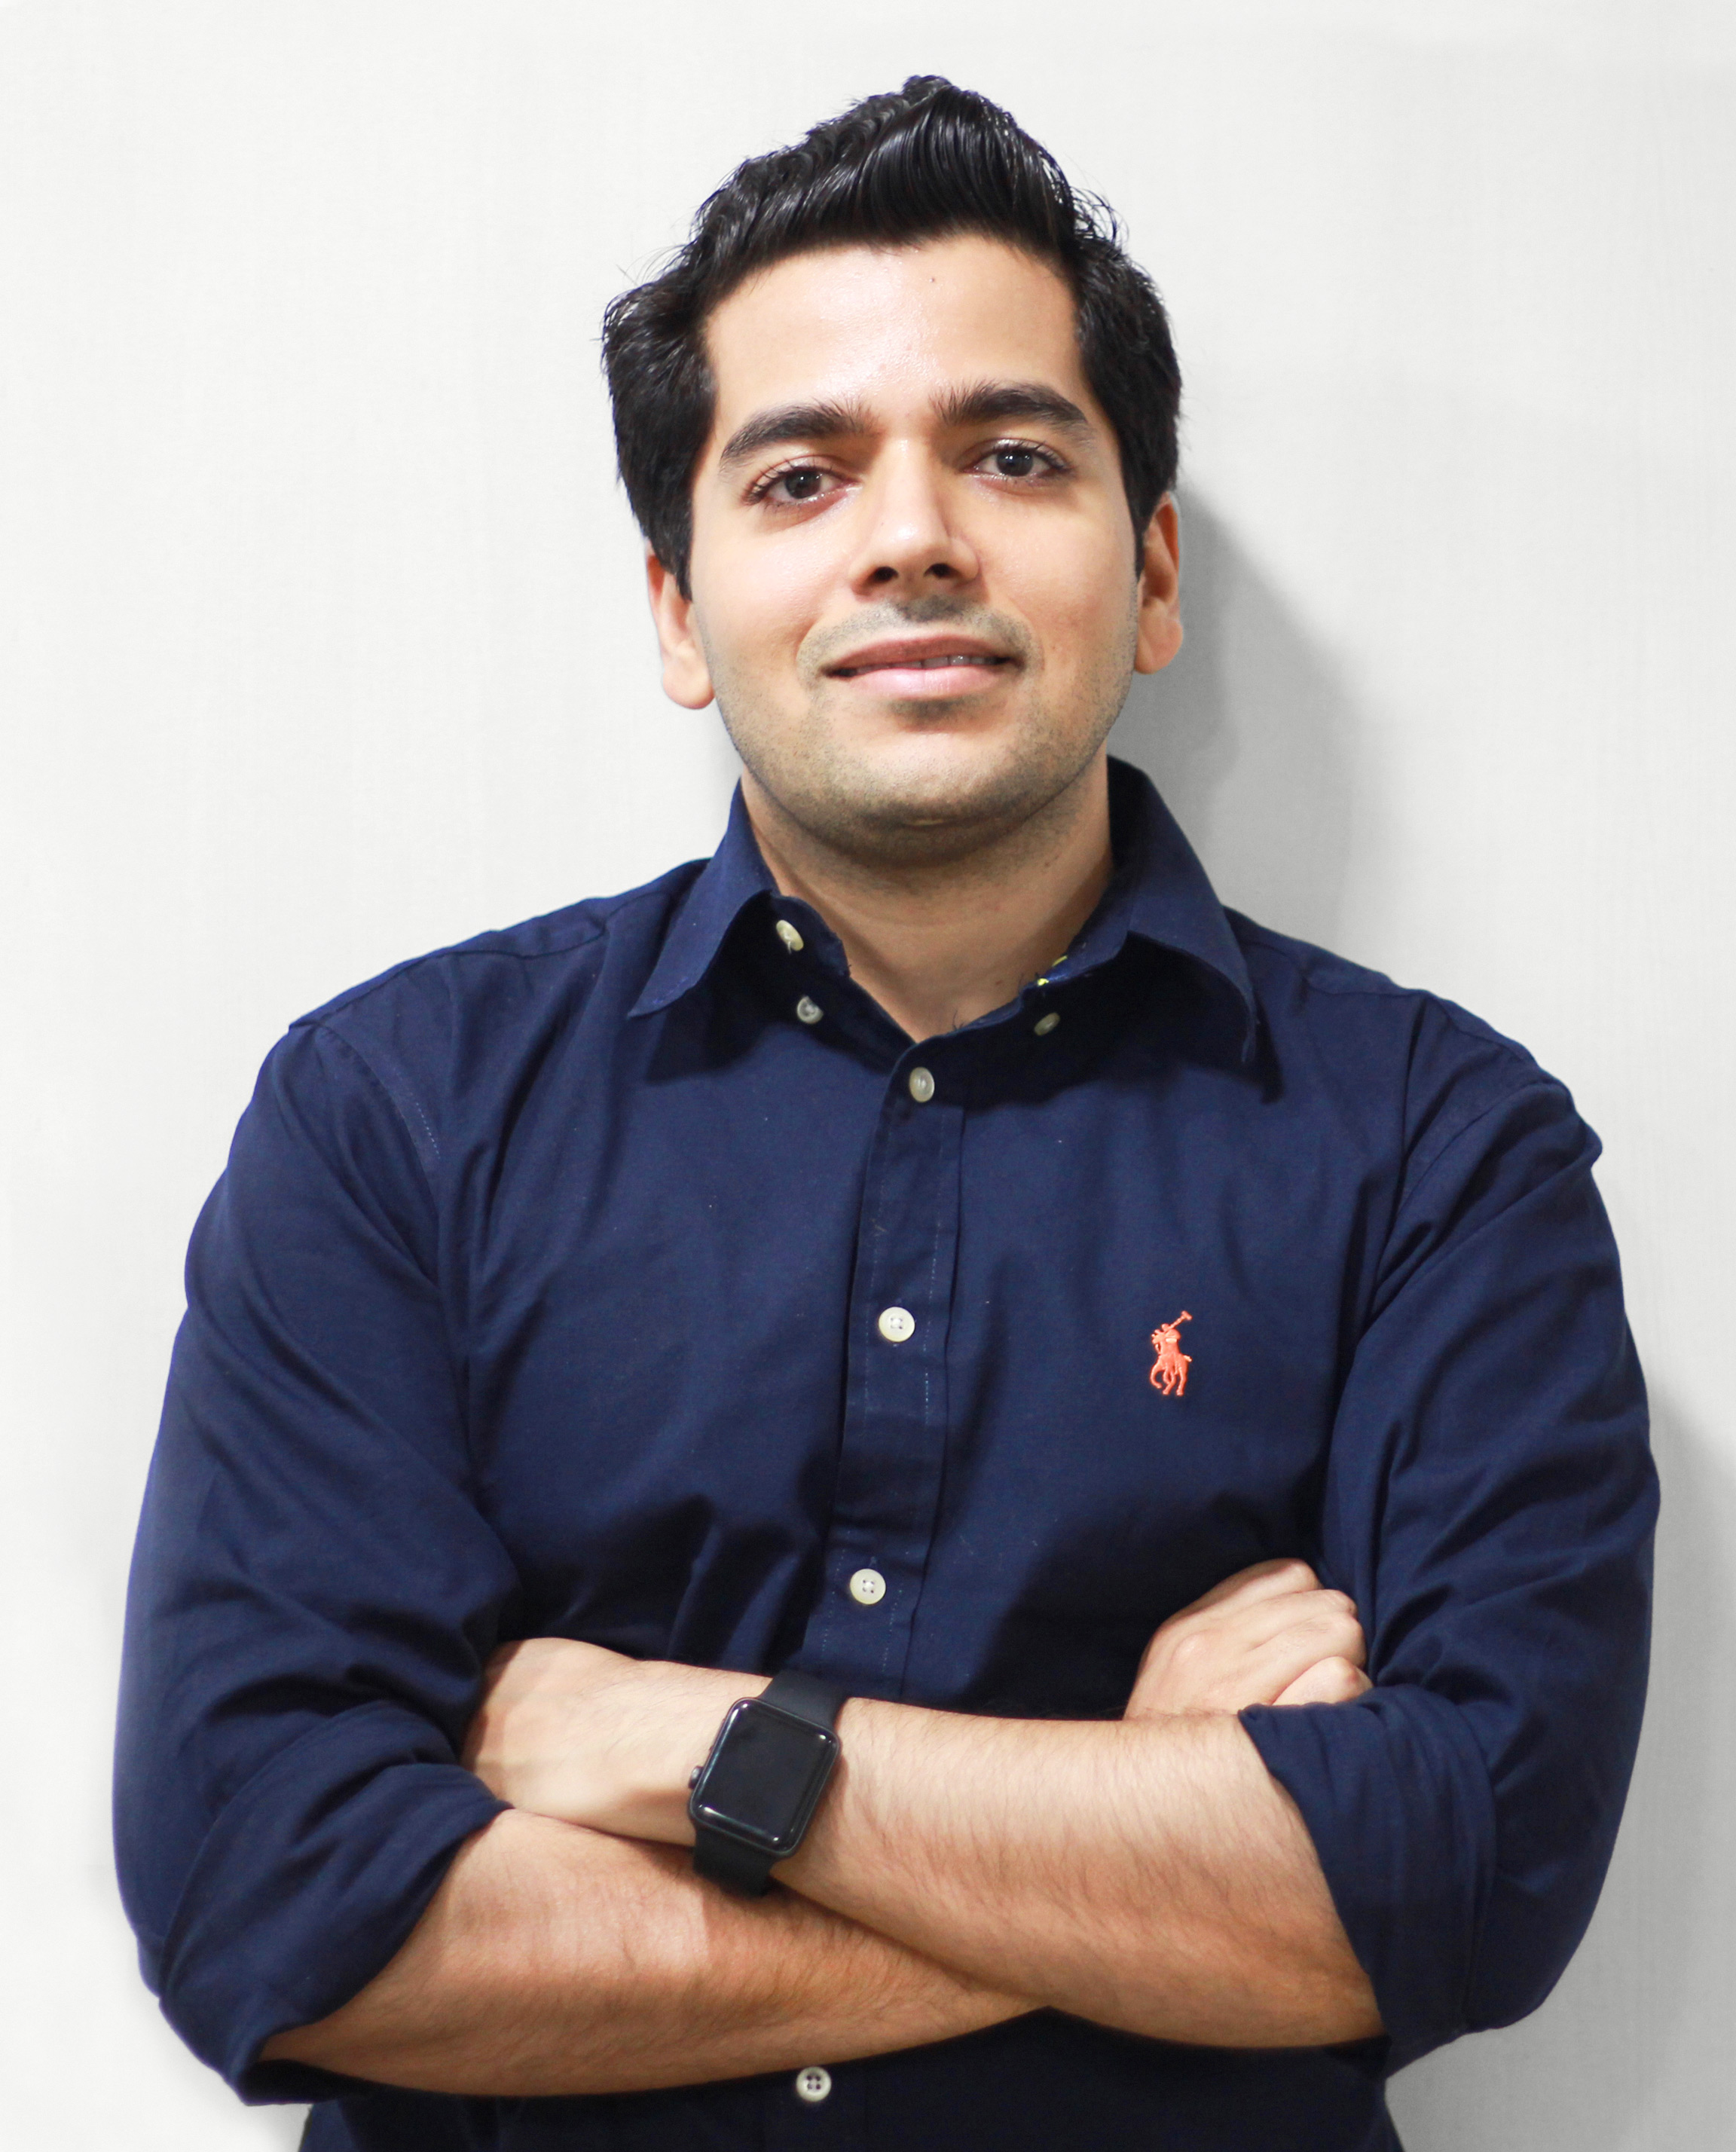 Piyush Jain, Co-Founder and CEO, ImpactGuru.com